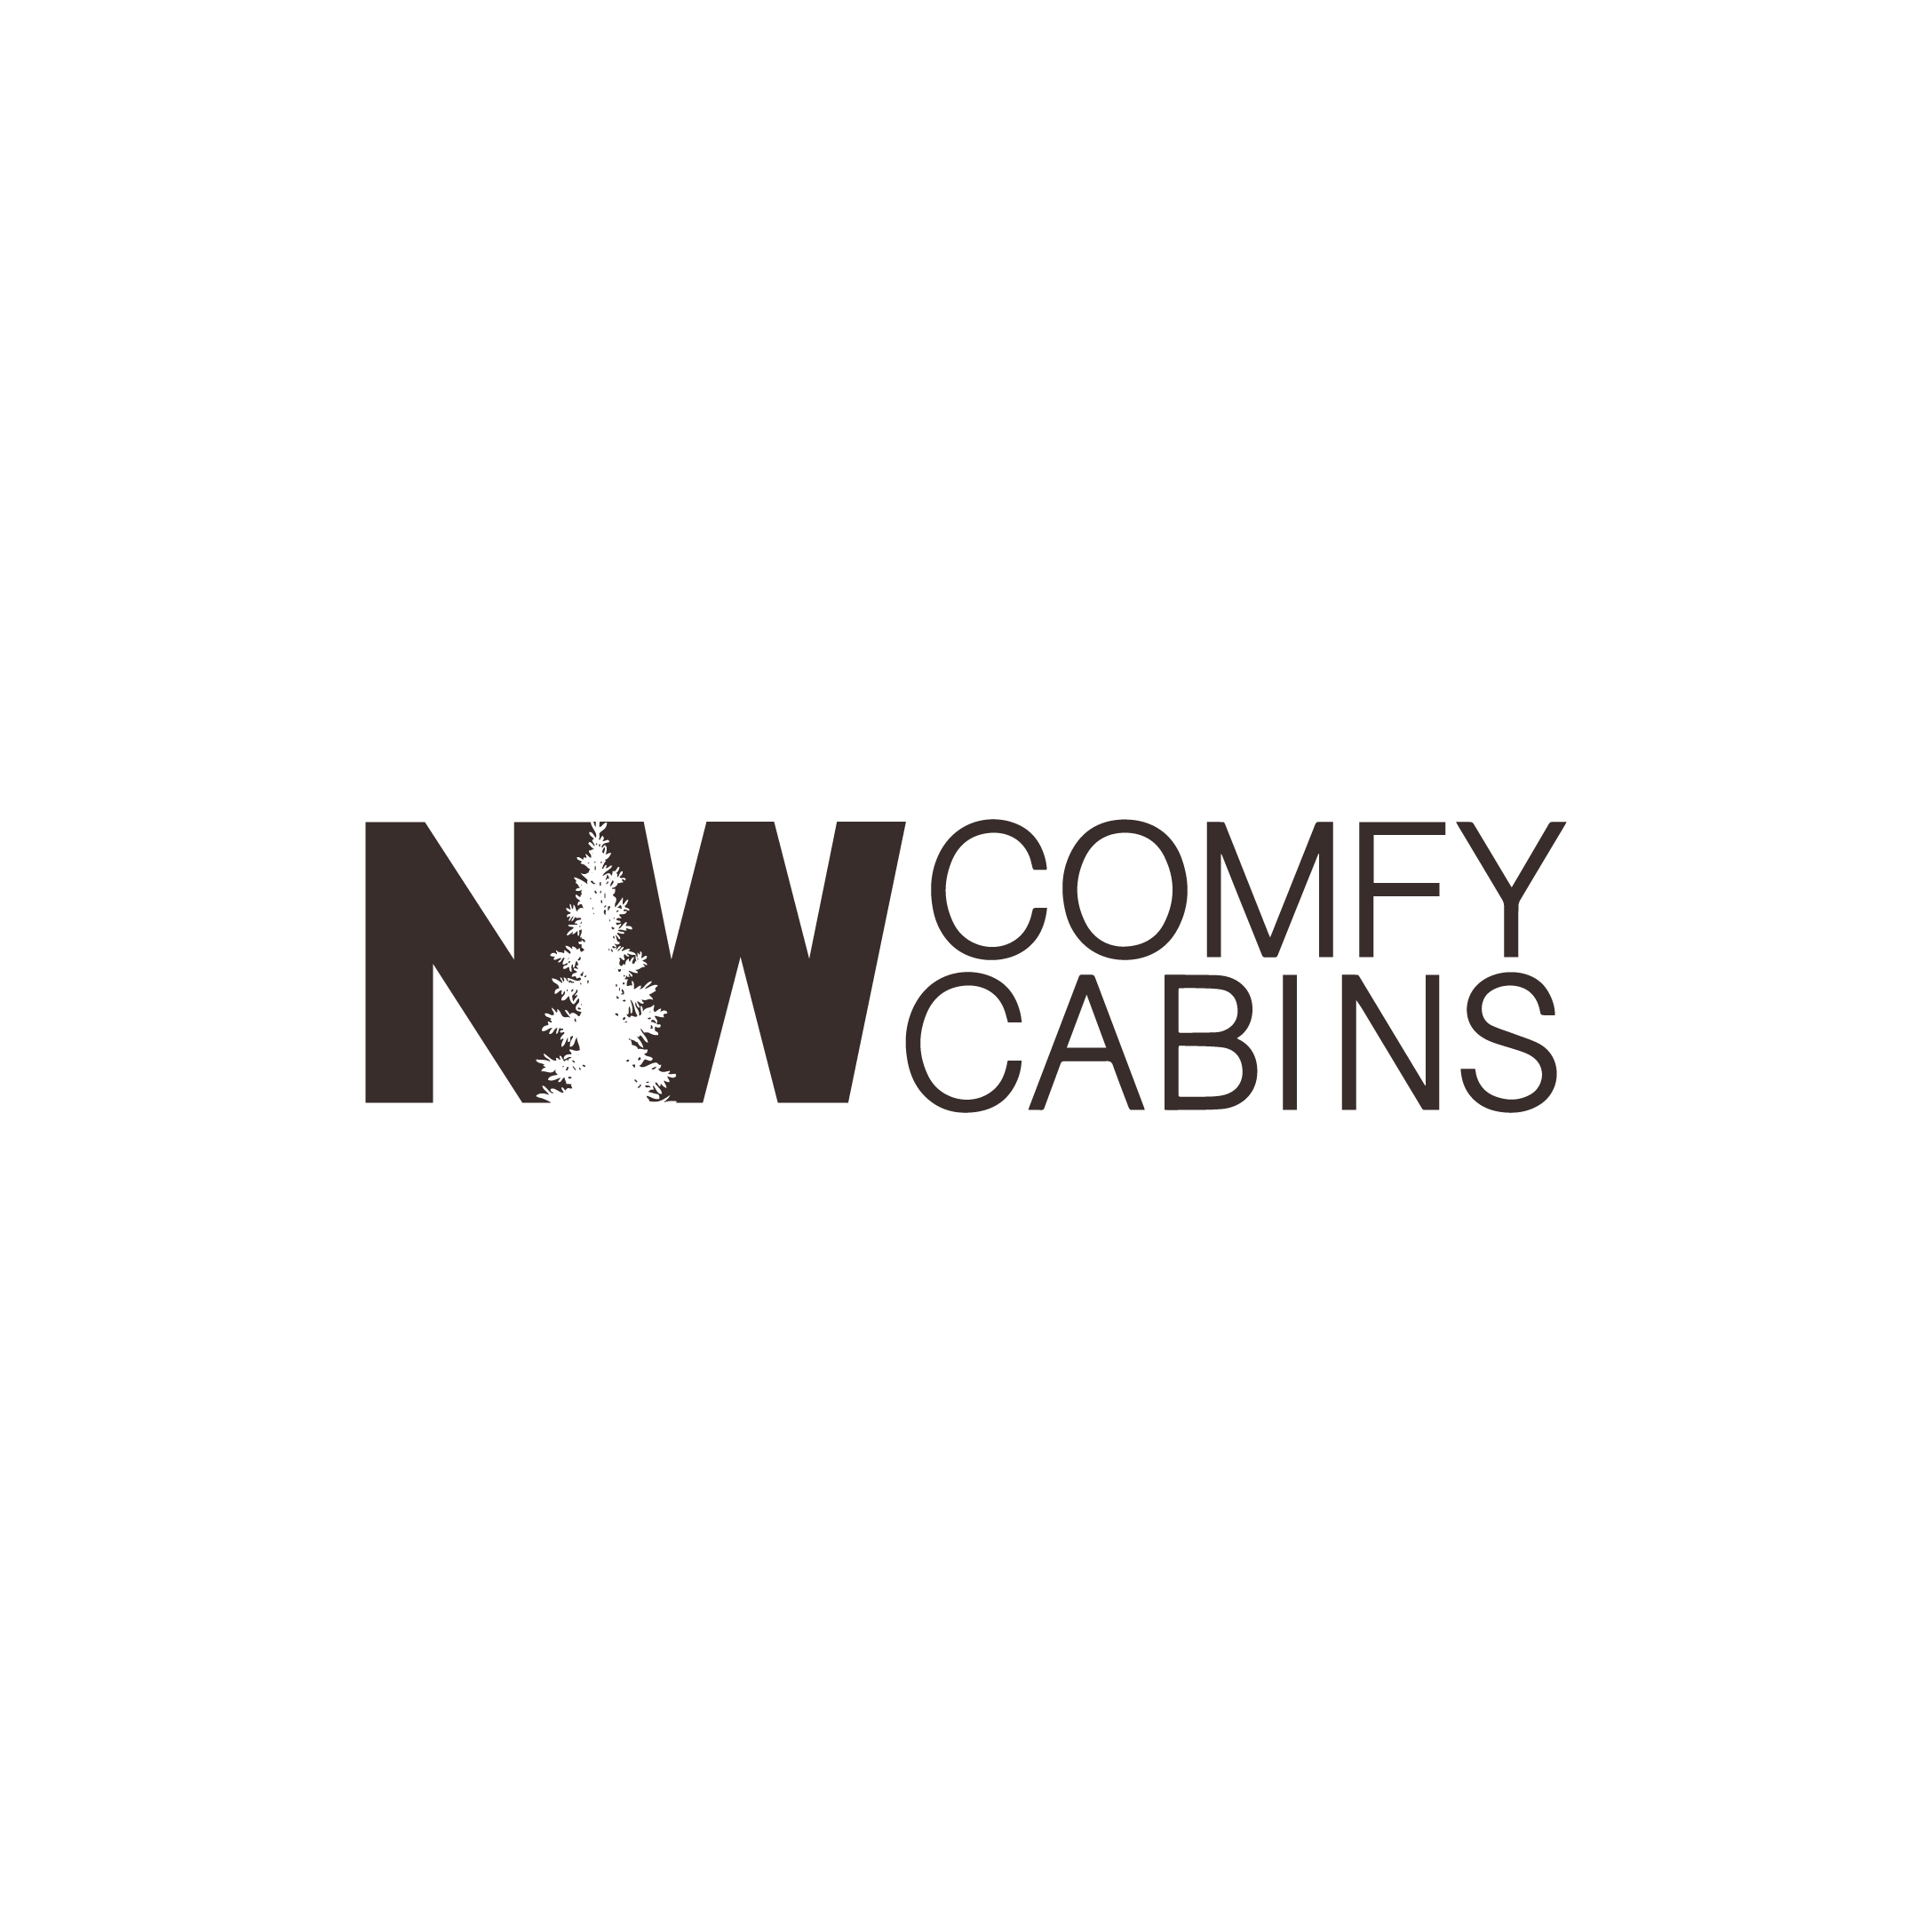 NW Comfy Cabins